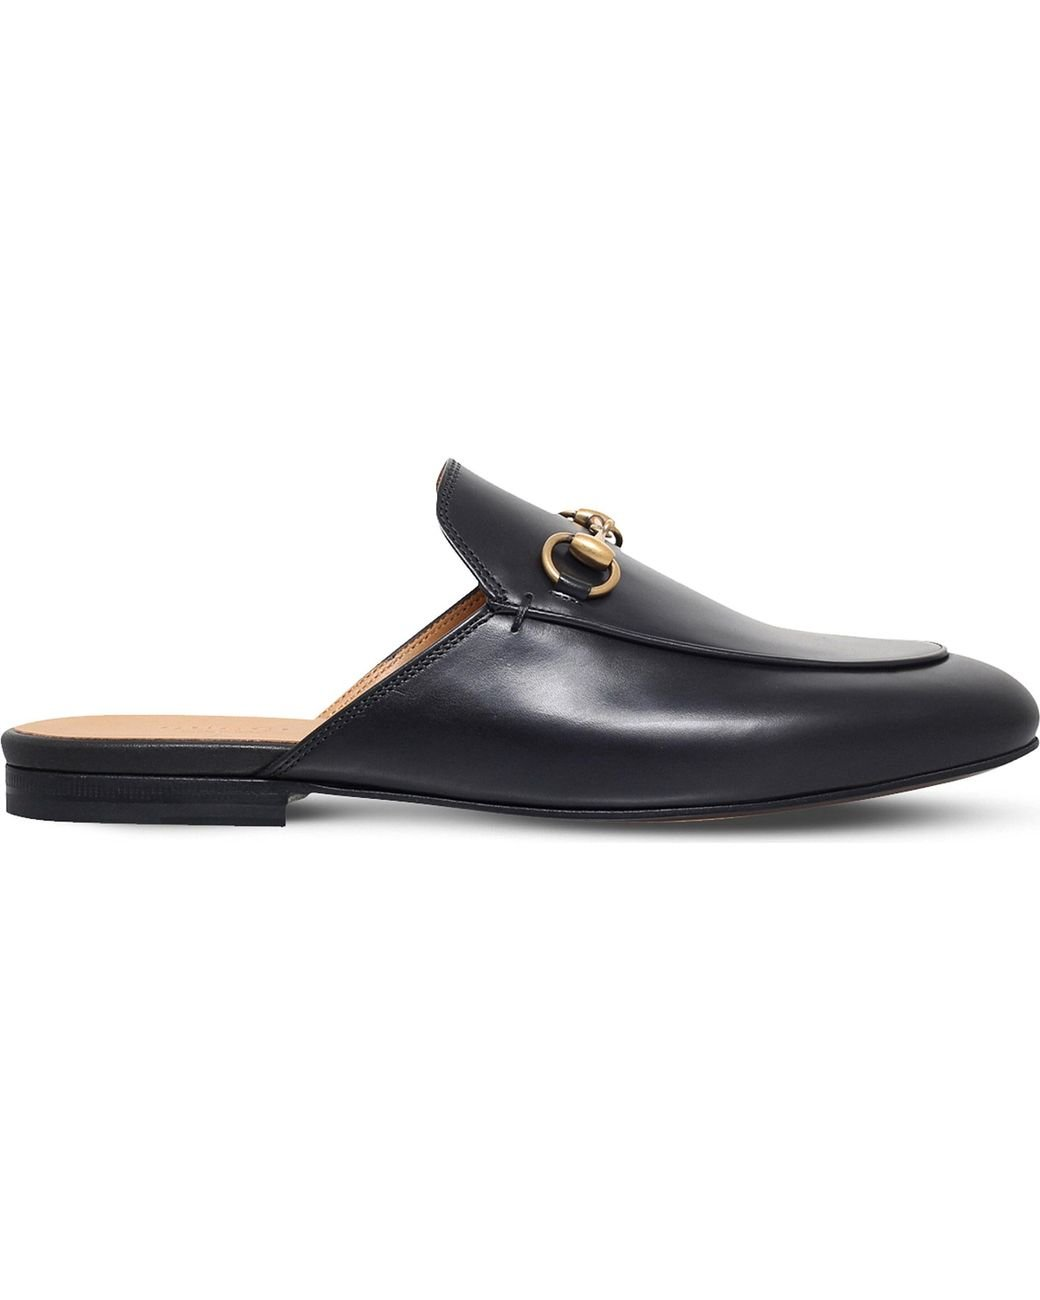 c7366773b52 Gucci Princeton Leather Slider Sandals in Black - Lyst